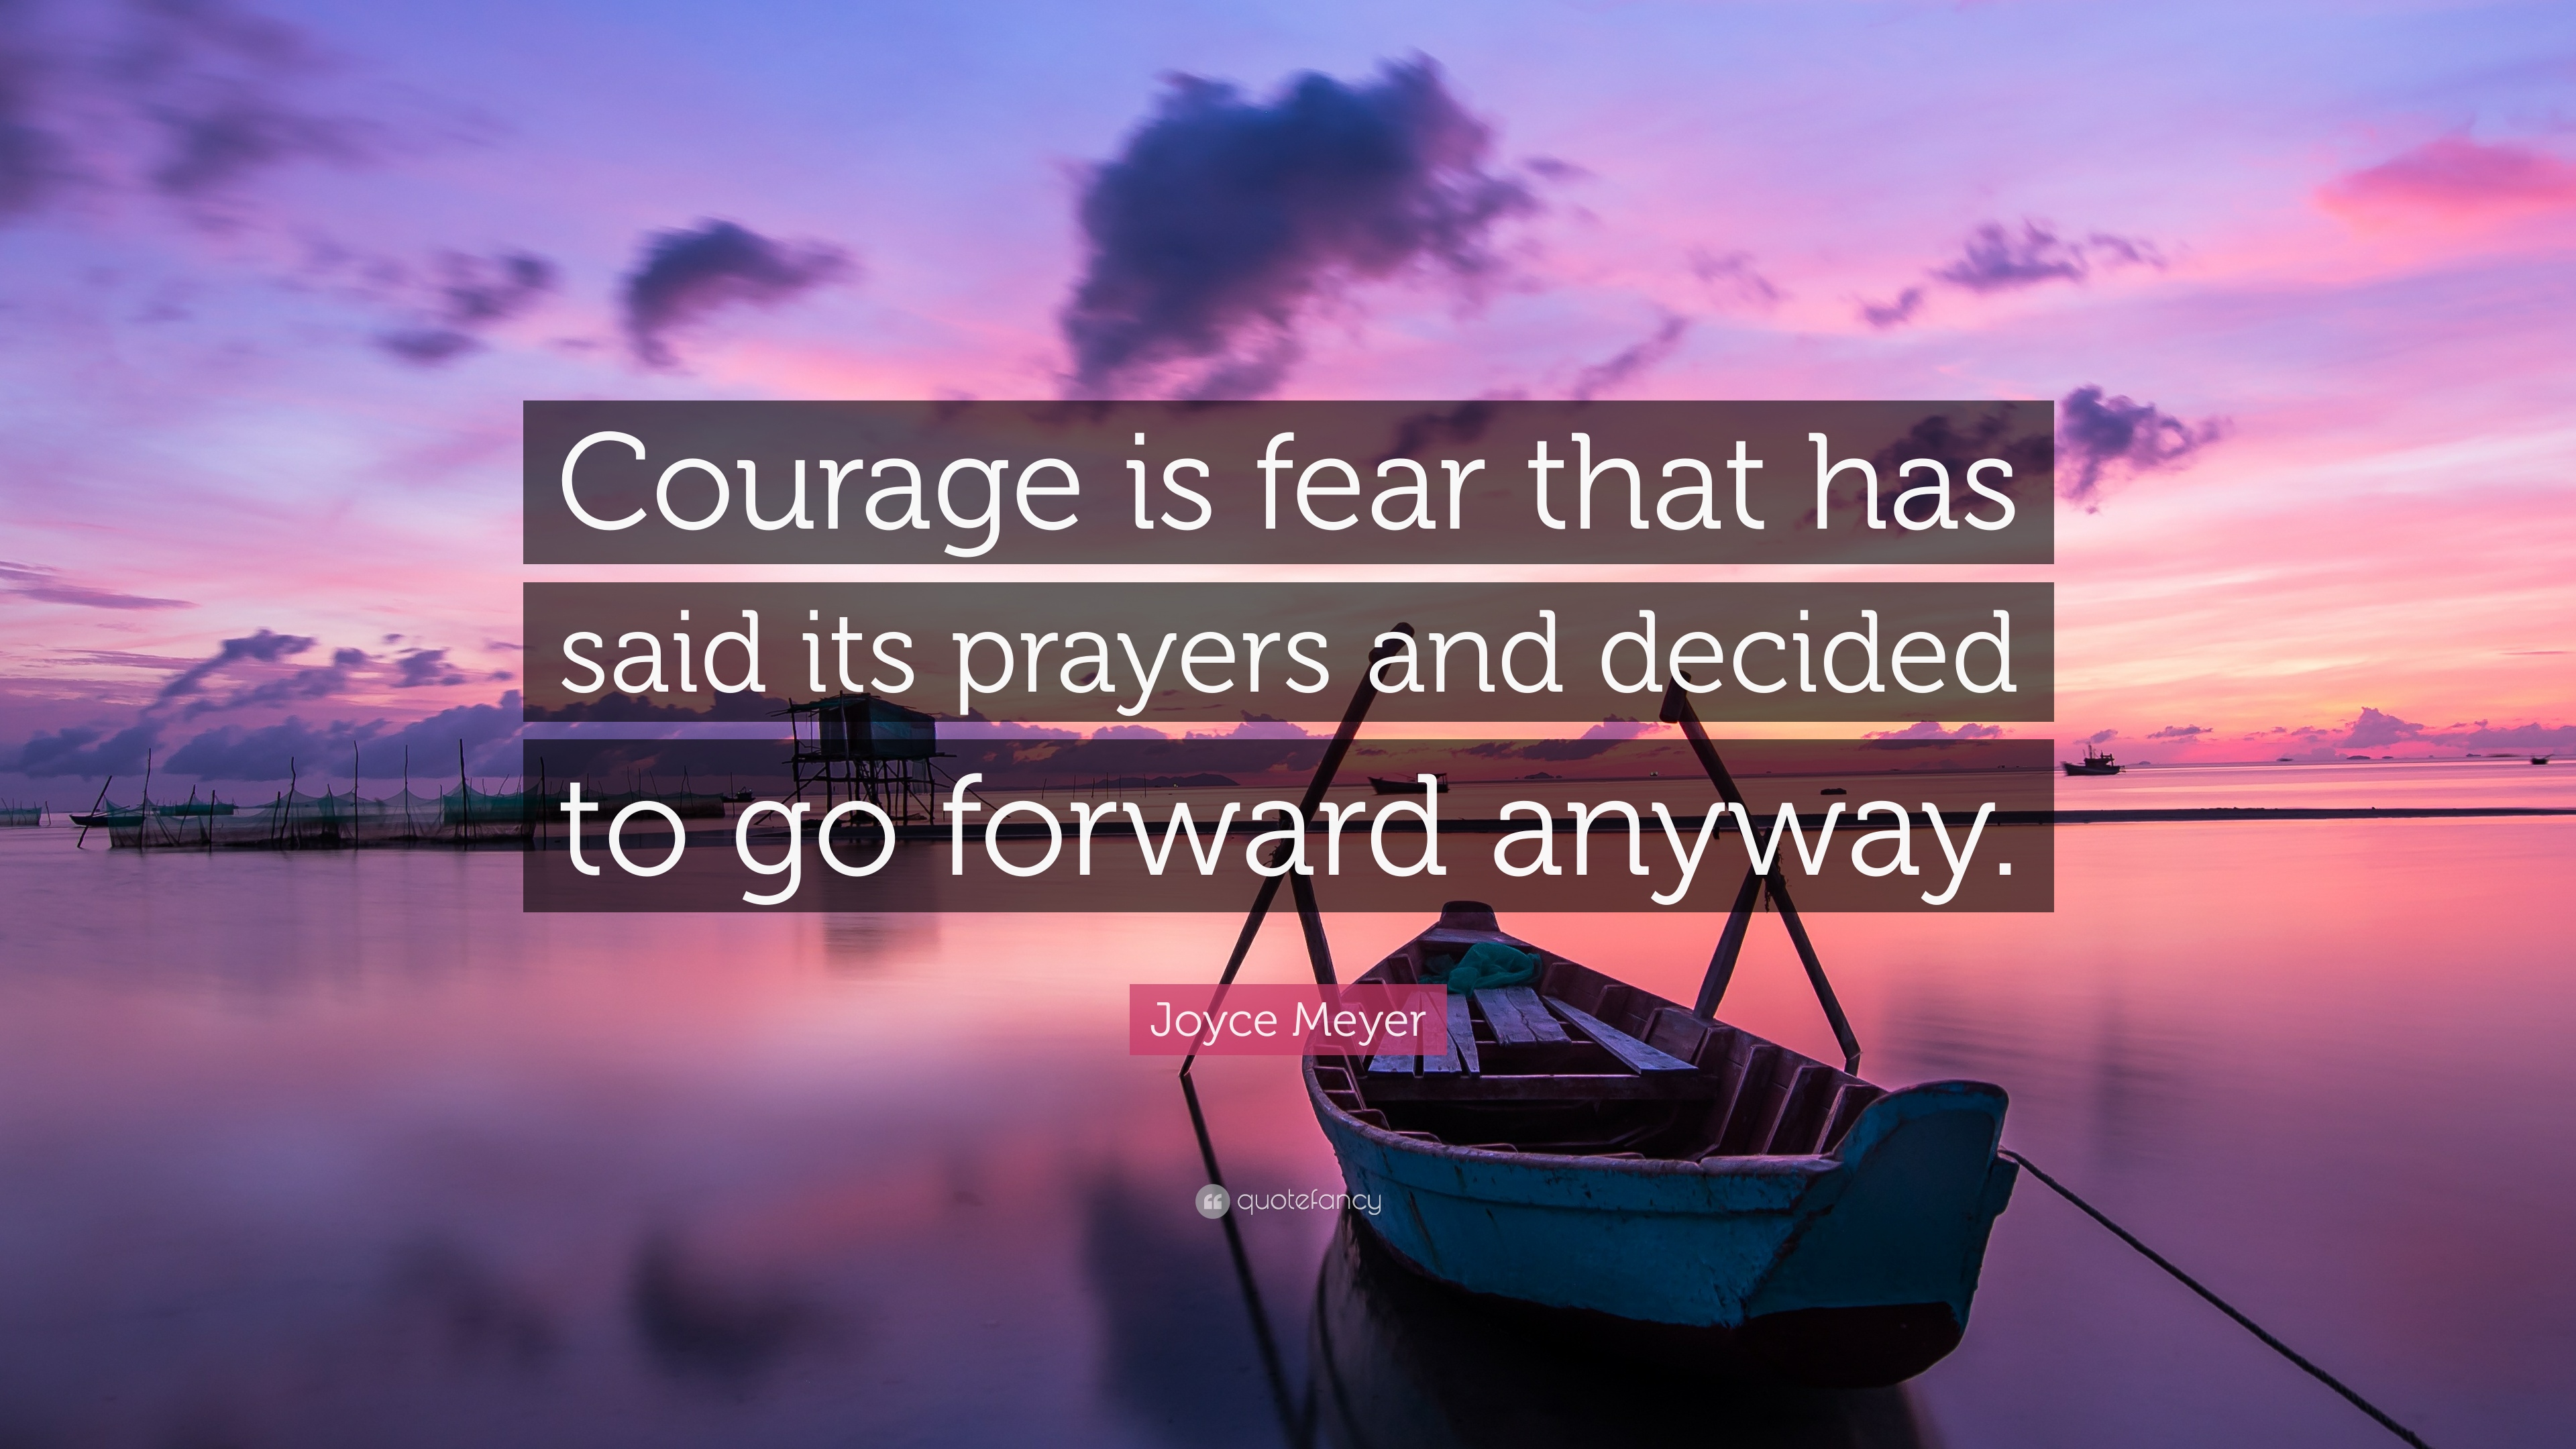 Pain Wallpaper Quotes Joyce Meyer Quote Courage Is Fear That Has Said Its